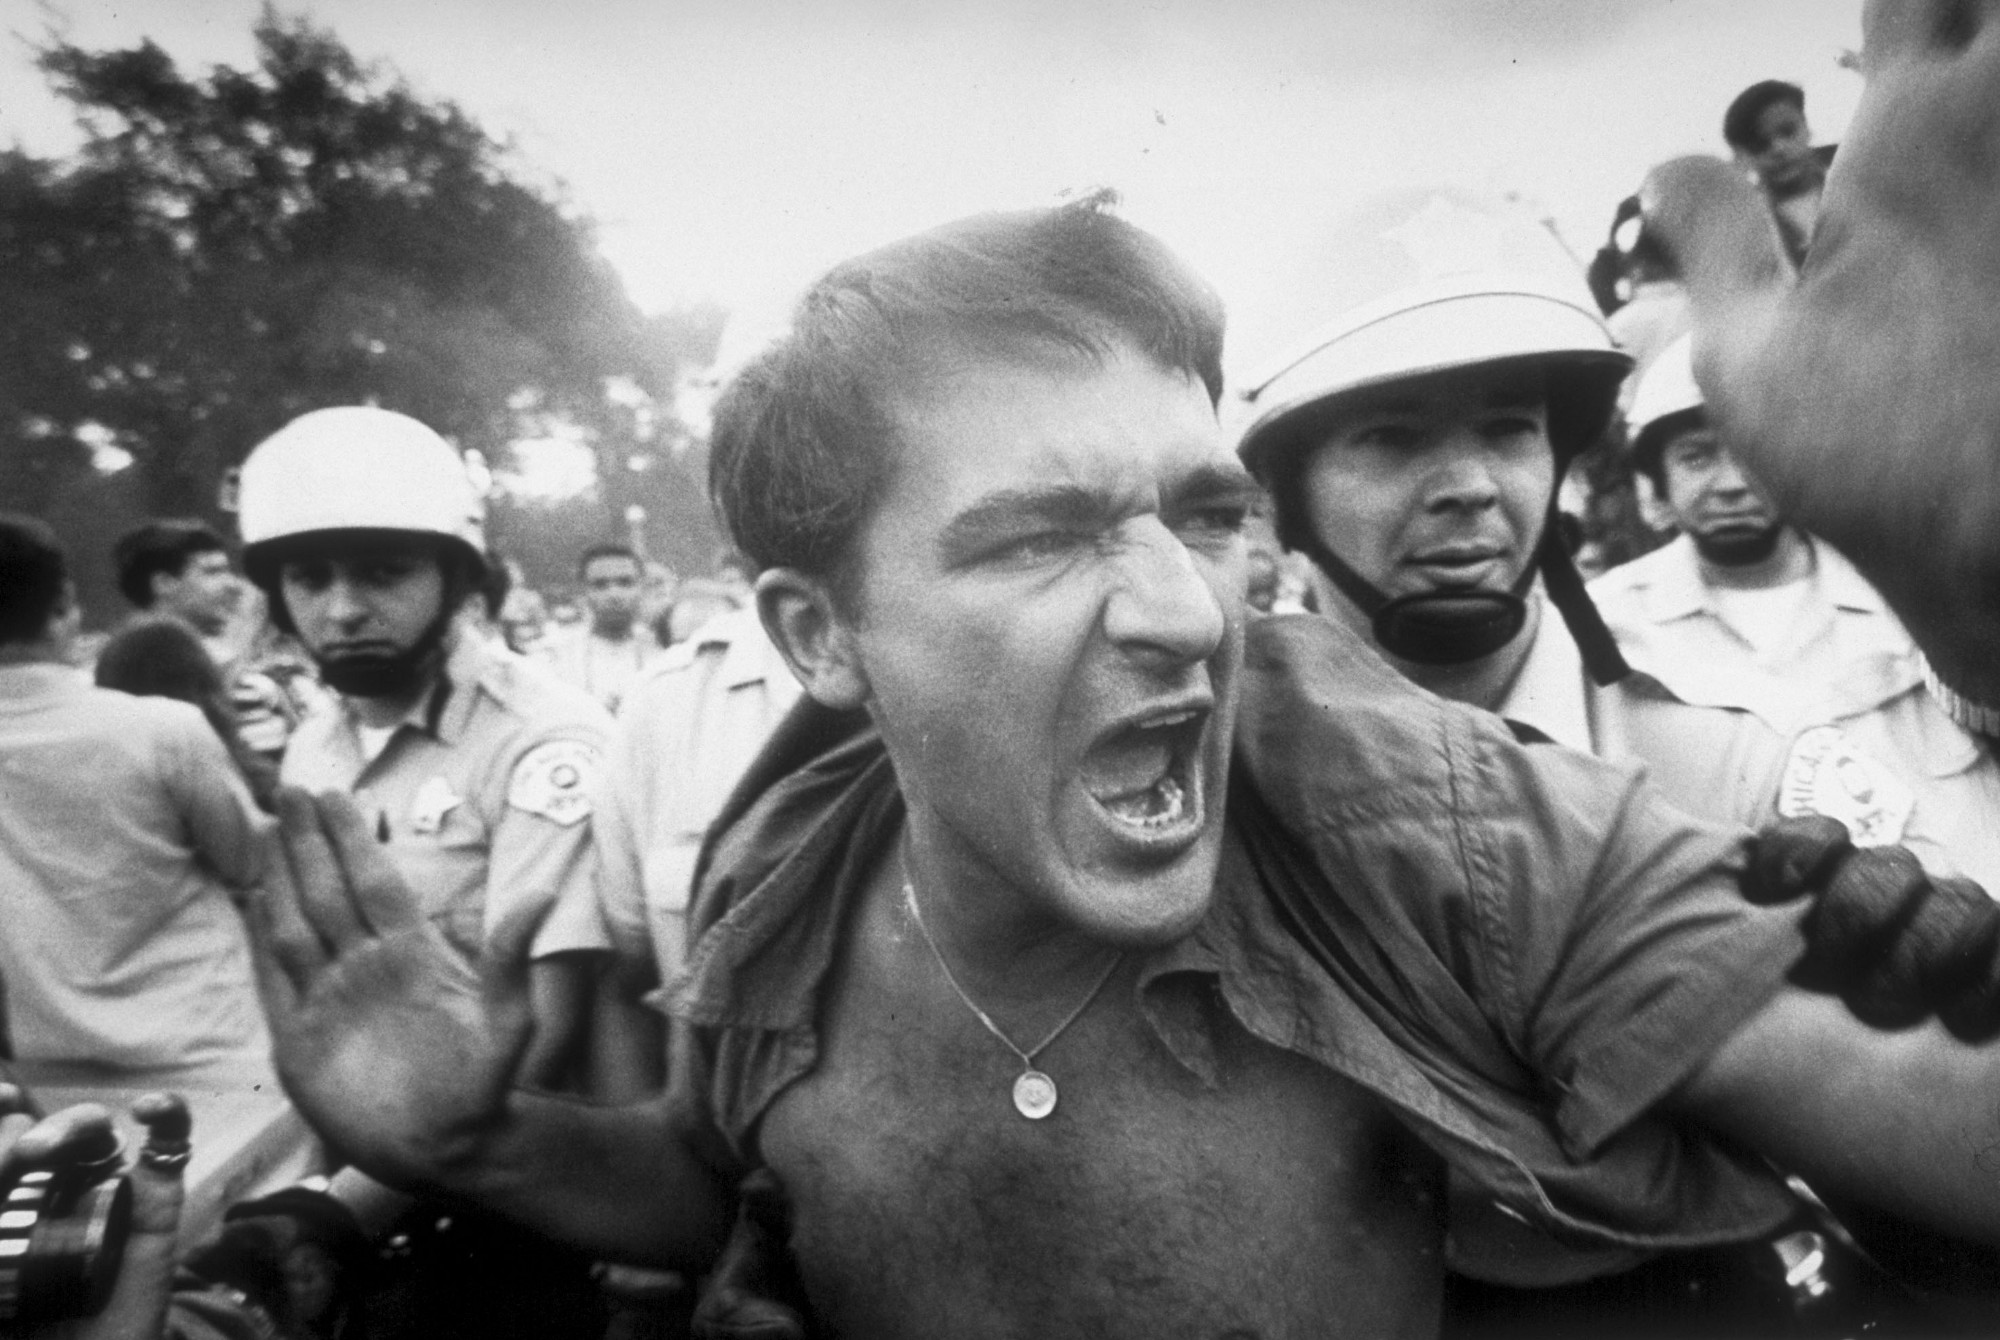 When The Resistance Confronted Democrats In 1968 Crackdown Was Vicious